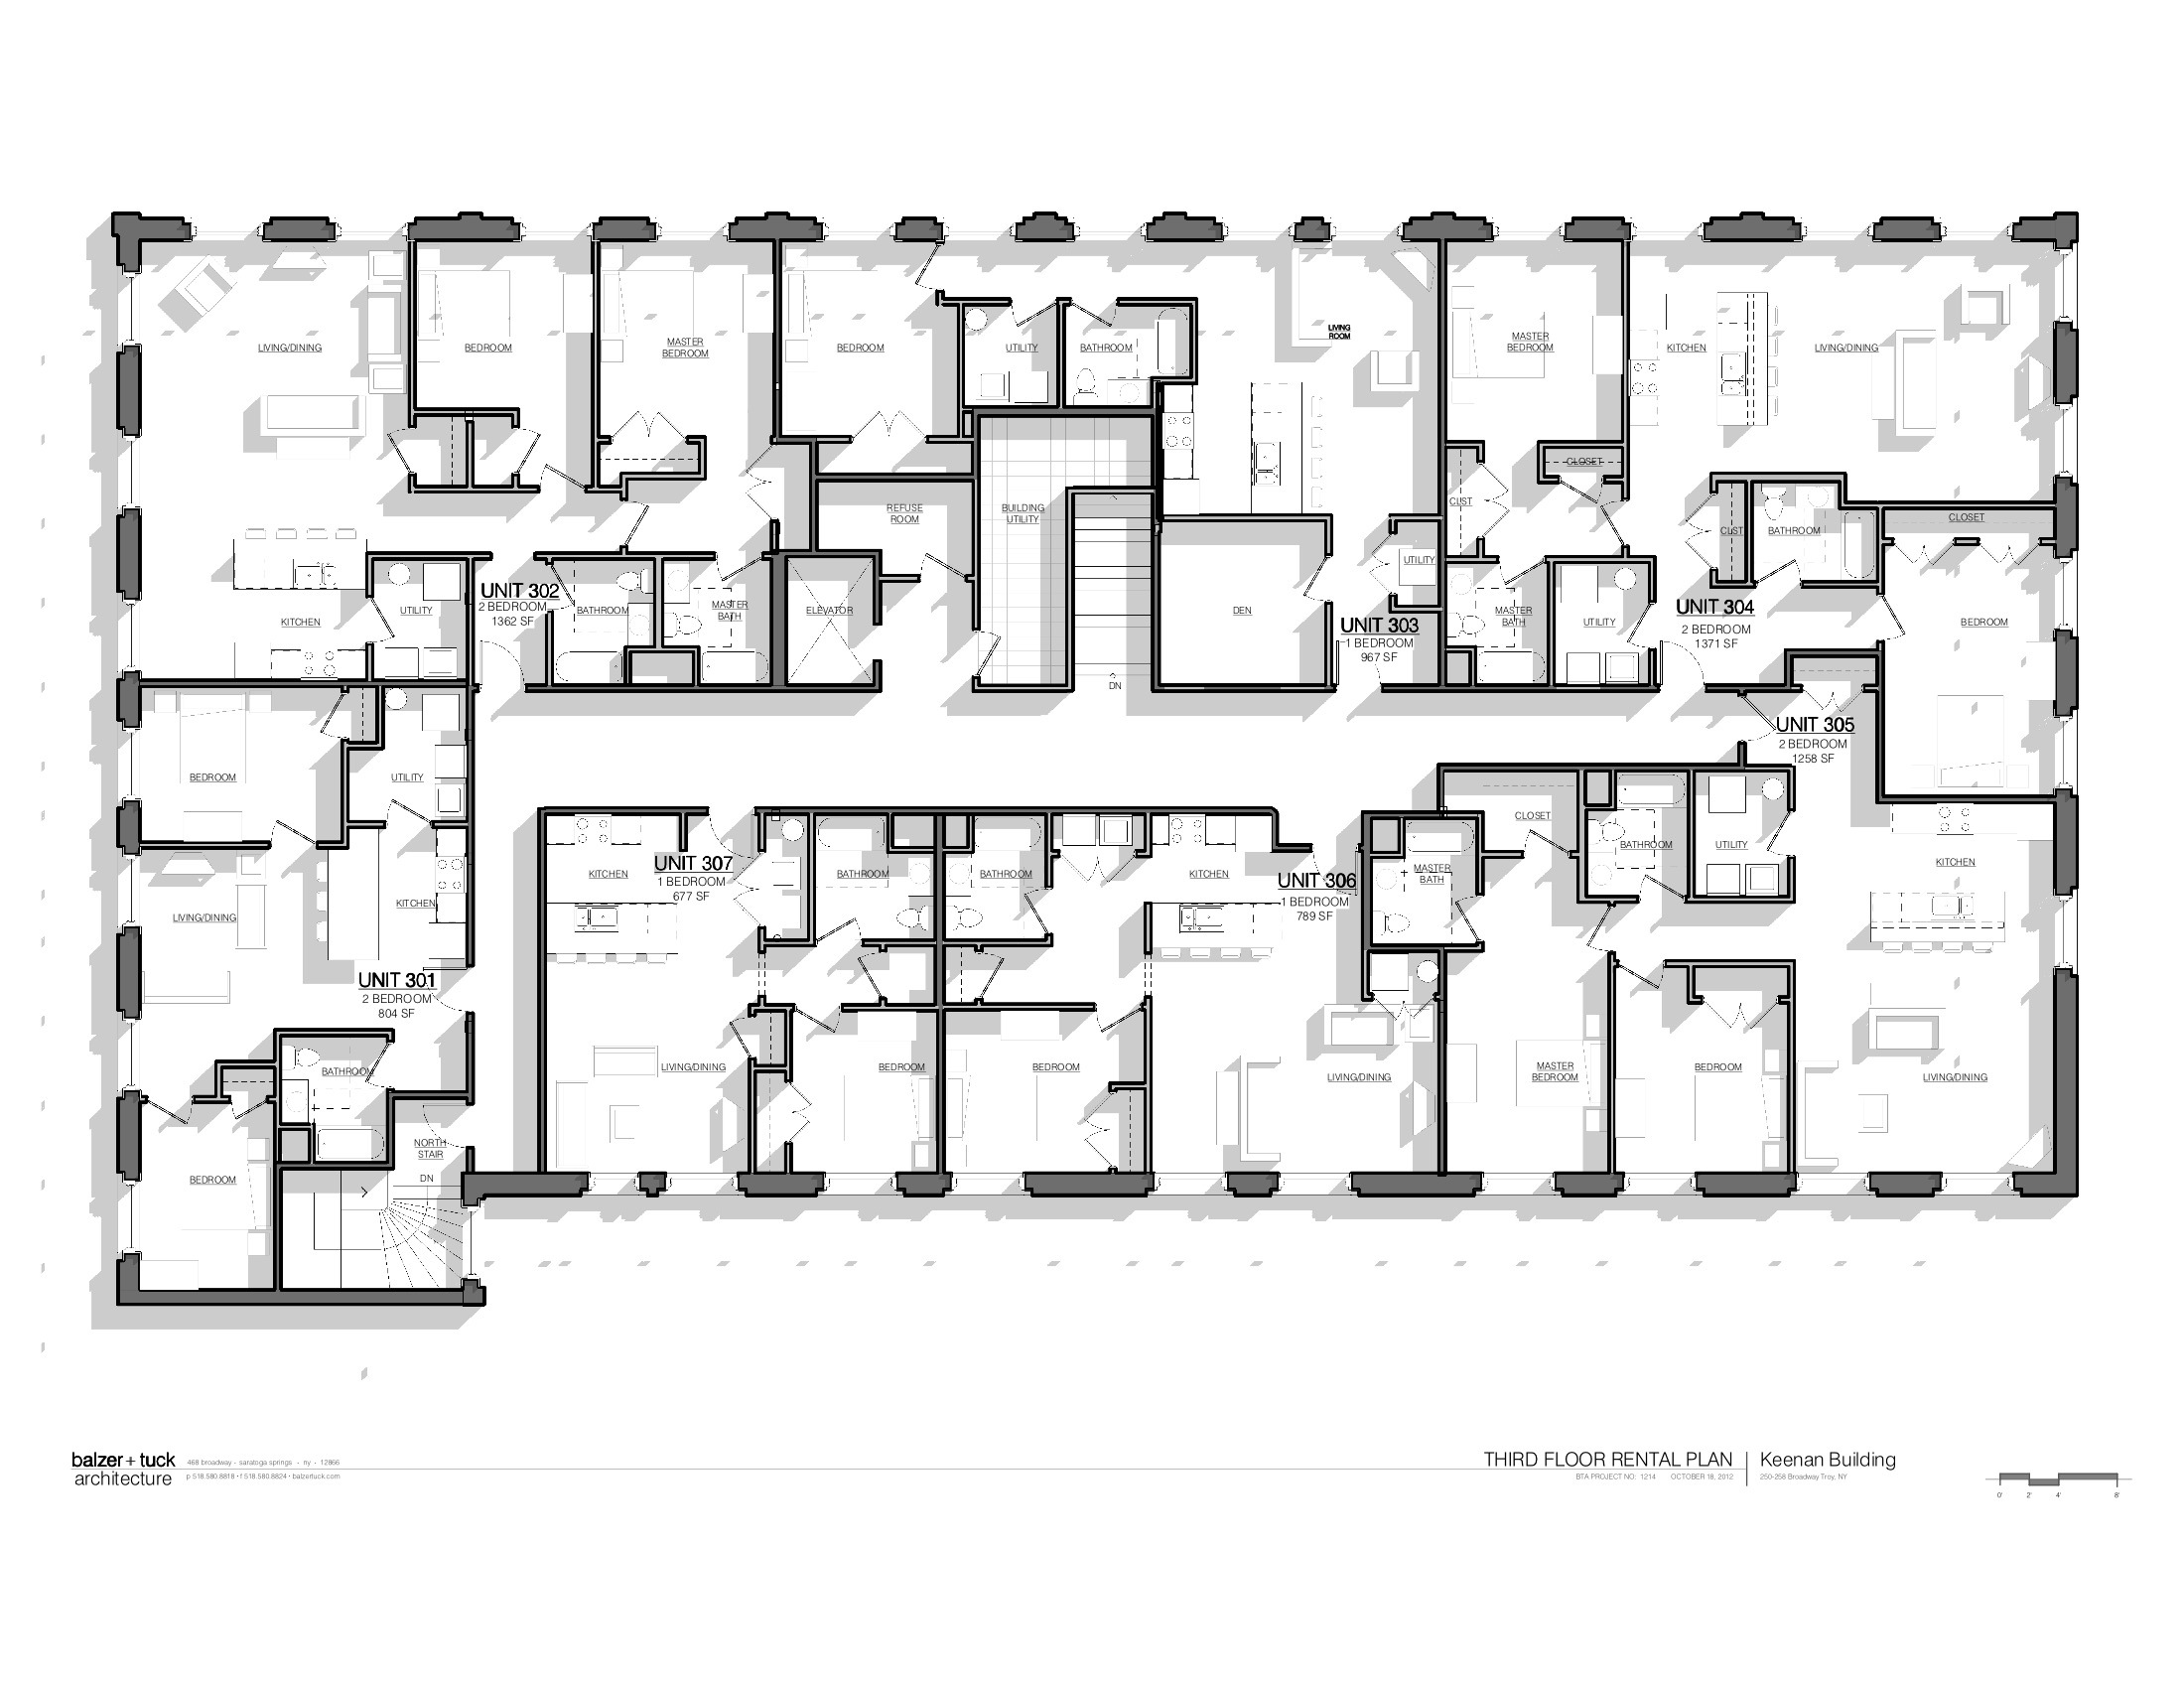 Keenan Building Floor Plans Troy New York: building plans